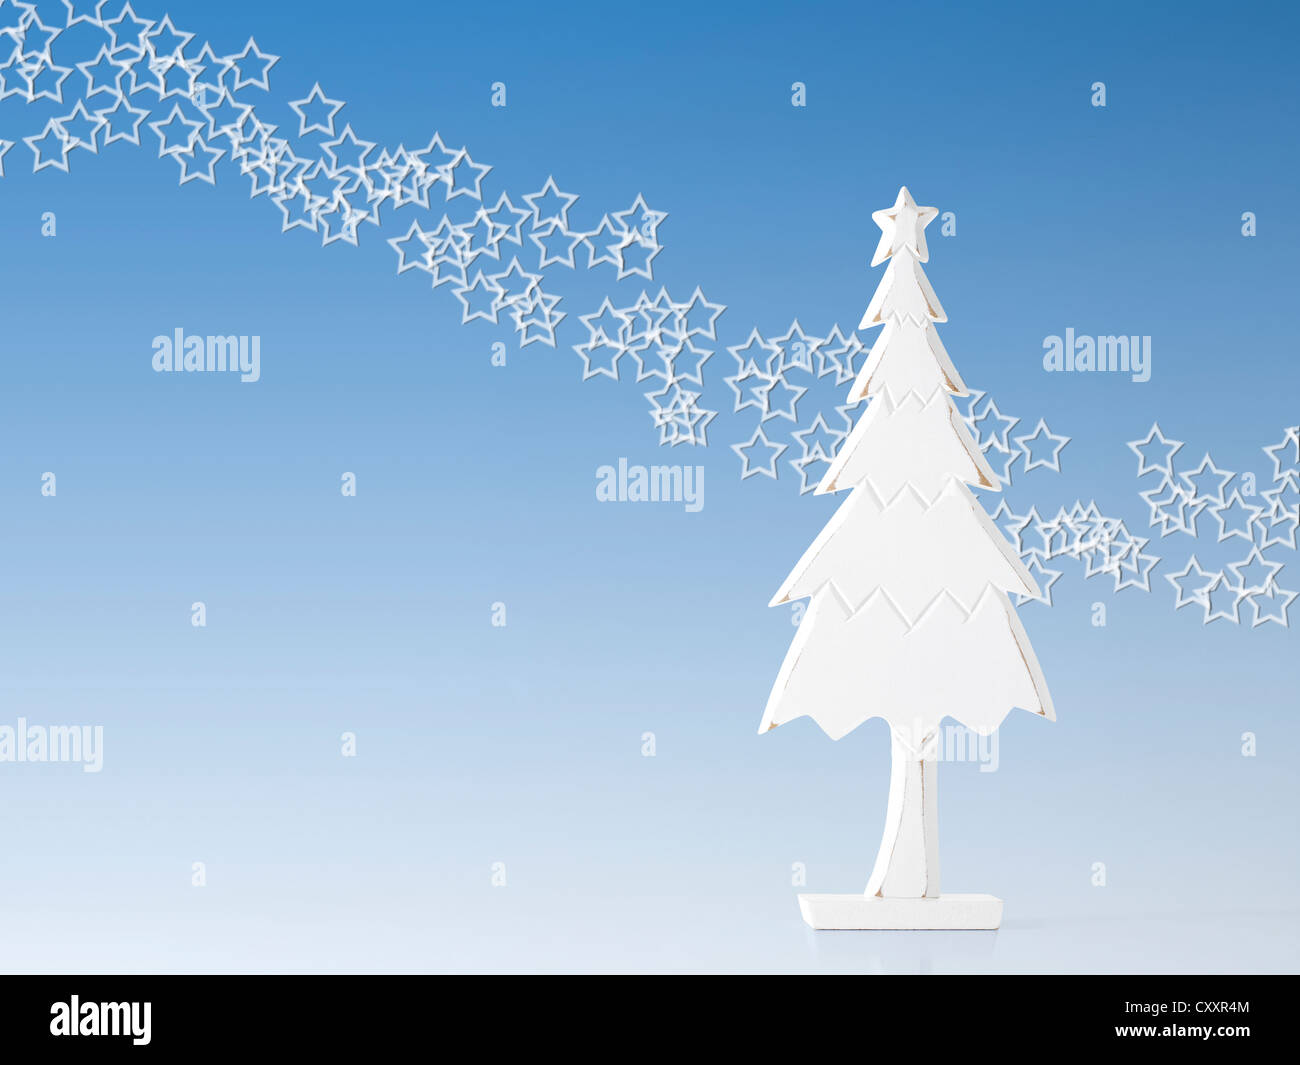 News Treands For Christmas Trees 2020 Stylize High Resolution Stock Photography and Images   Alamy